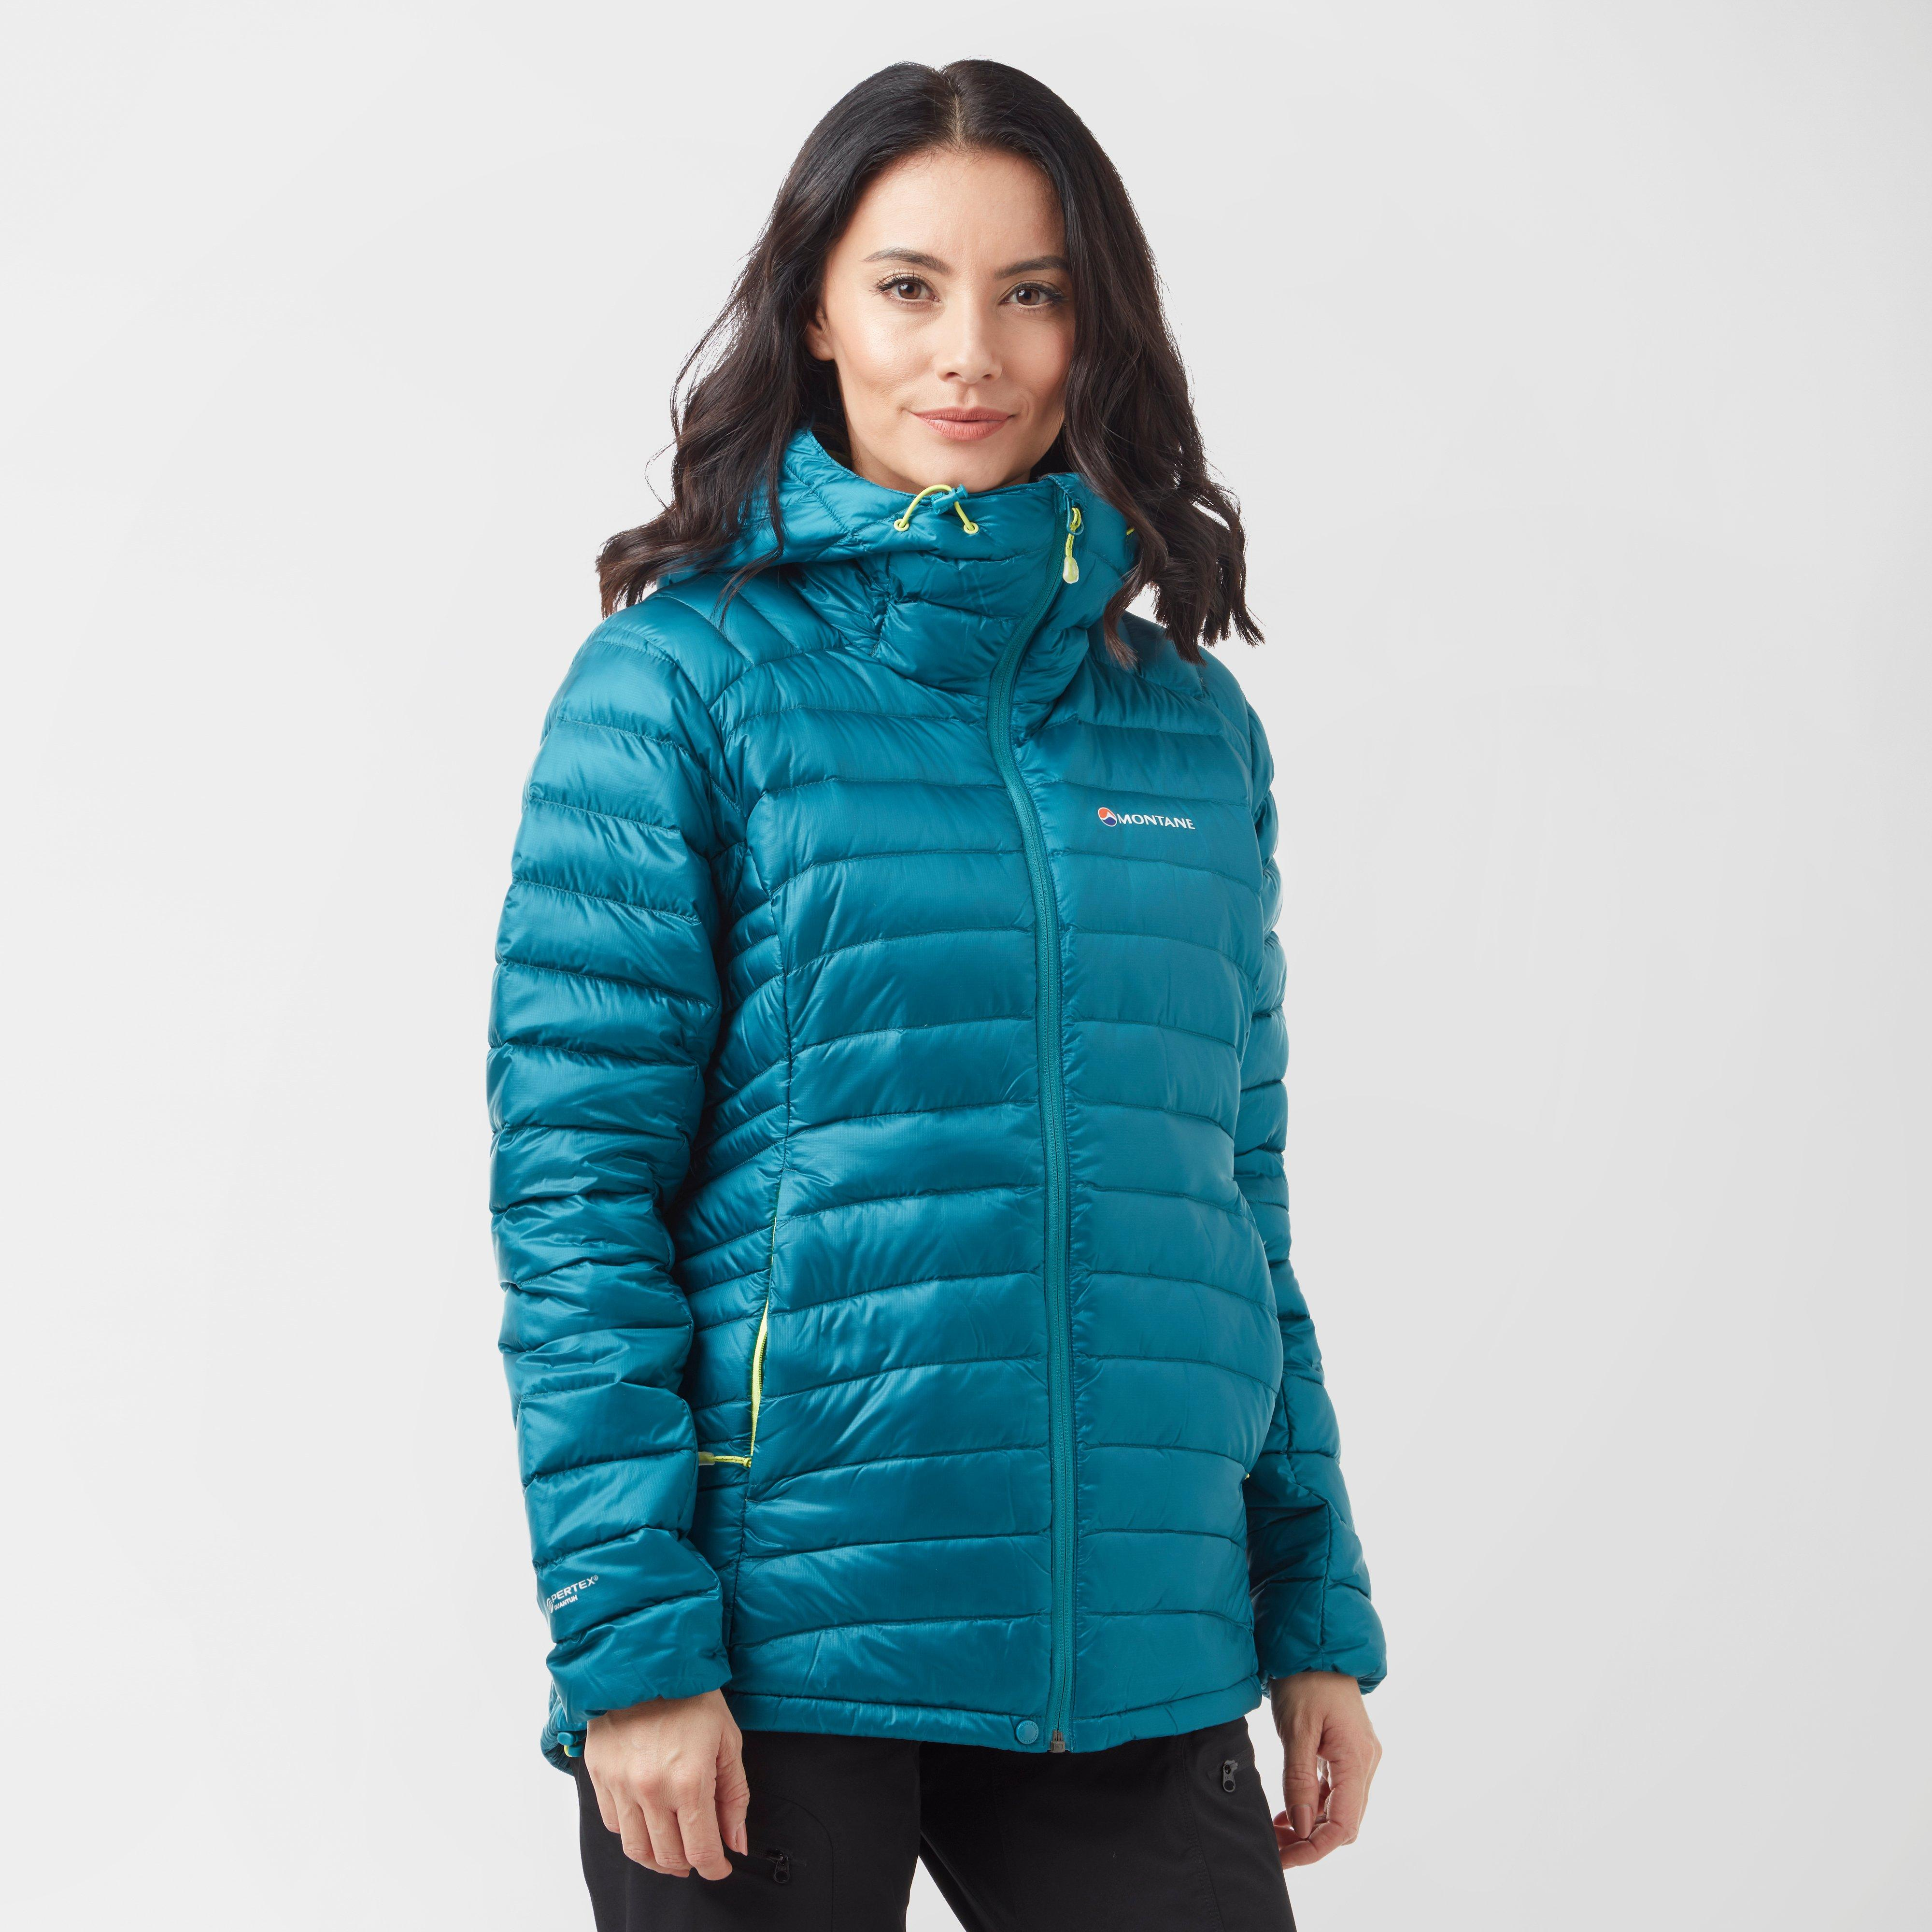 6087504f2bf Montane Featherlite Down Jacket – Women's | Compare outdoor ...